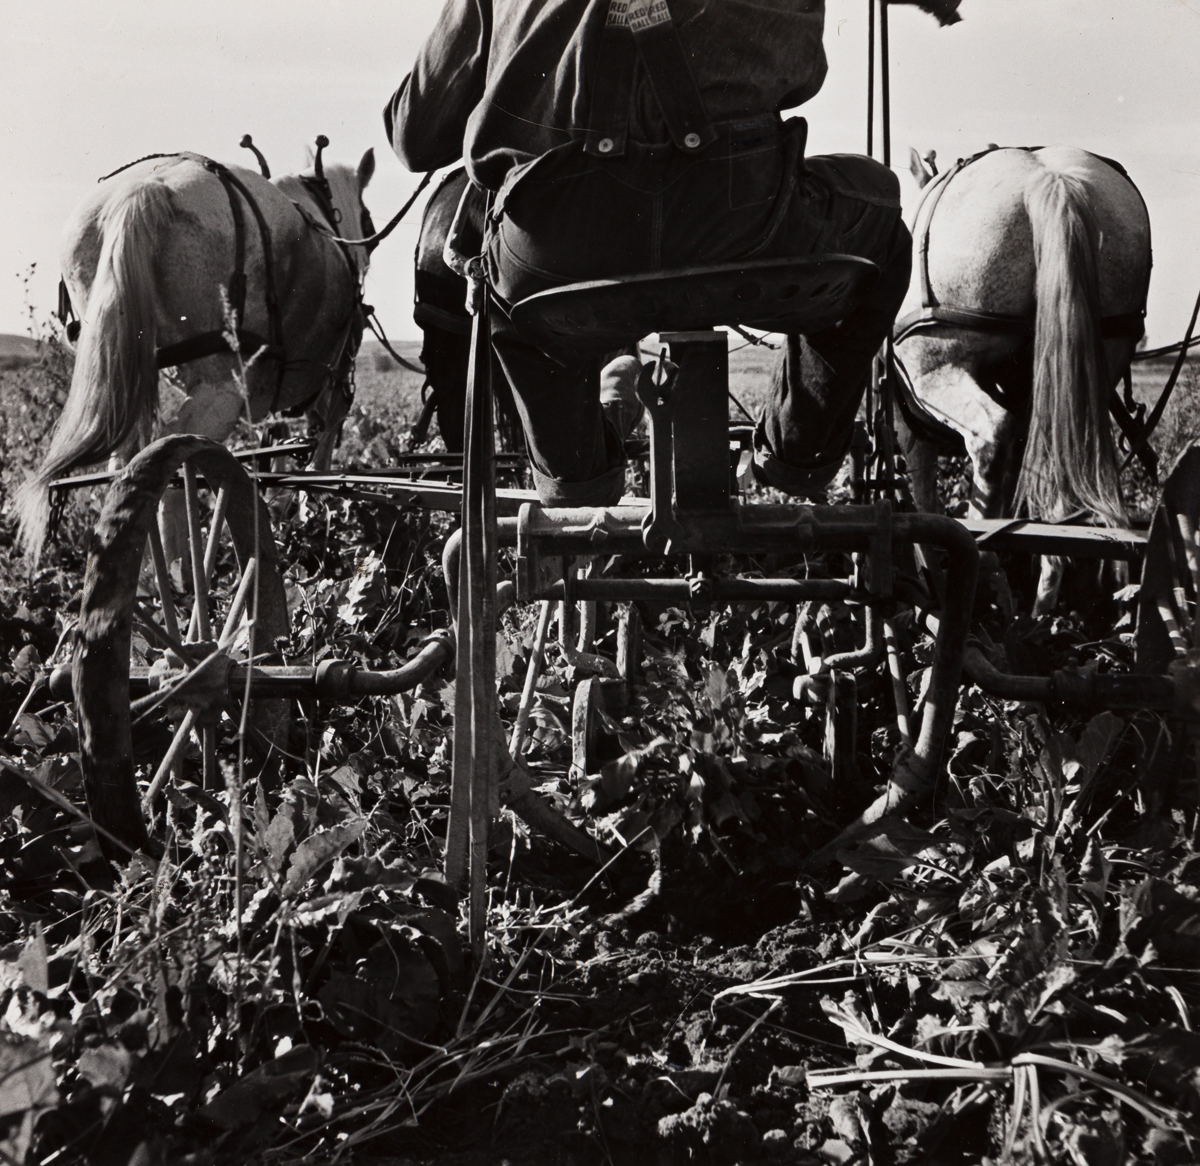 DOROTHEA LANGE (1895-1965) Sugar beet lifter in older settlers field, which loosens beets and partially lifts them from ground. Near O